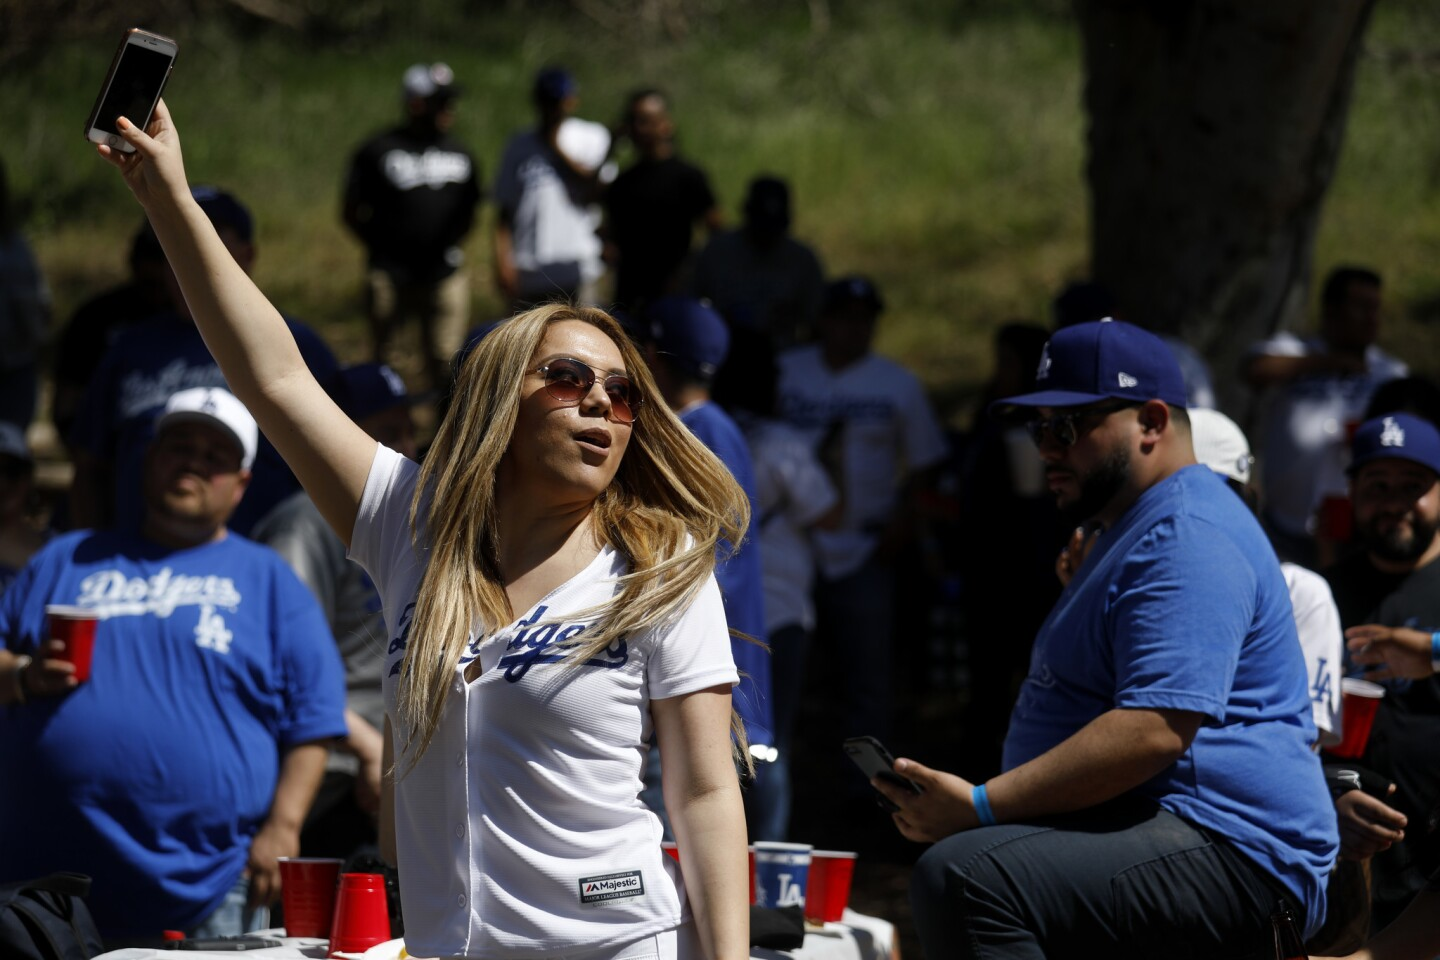 LOS ANGELES, CALIF. -- THURSDAY, MARCH 29, 2018: Melissa Enriquez, of Orange, dances to the music of Banda Tomateros de Culiacan at the Puro Pari 2018 Opening Day tailgate gathering at Elysian Park before the start of the Los Angeles Dodgers against the San Francisco Giants MLB game in Los Angeles, Calif., on March 29, 2018. (Gary Coronado / Los Angeles Times)